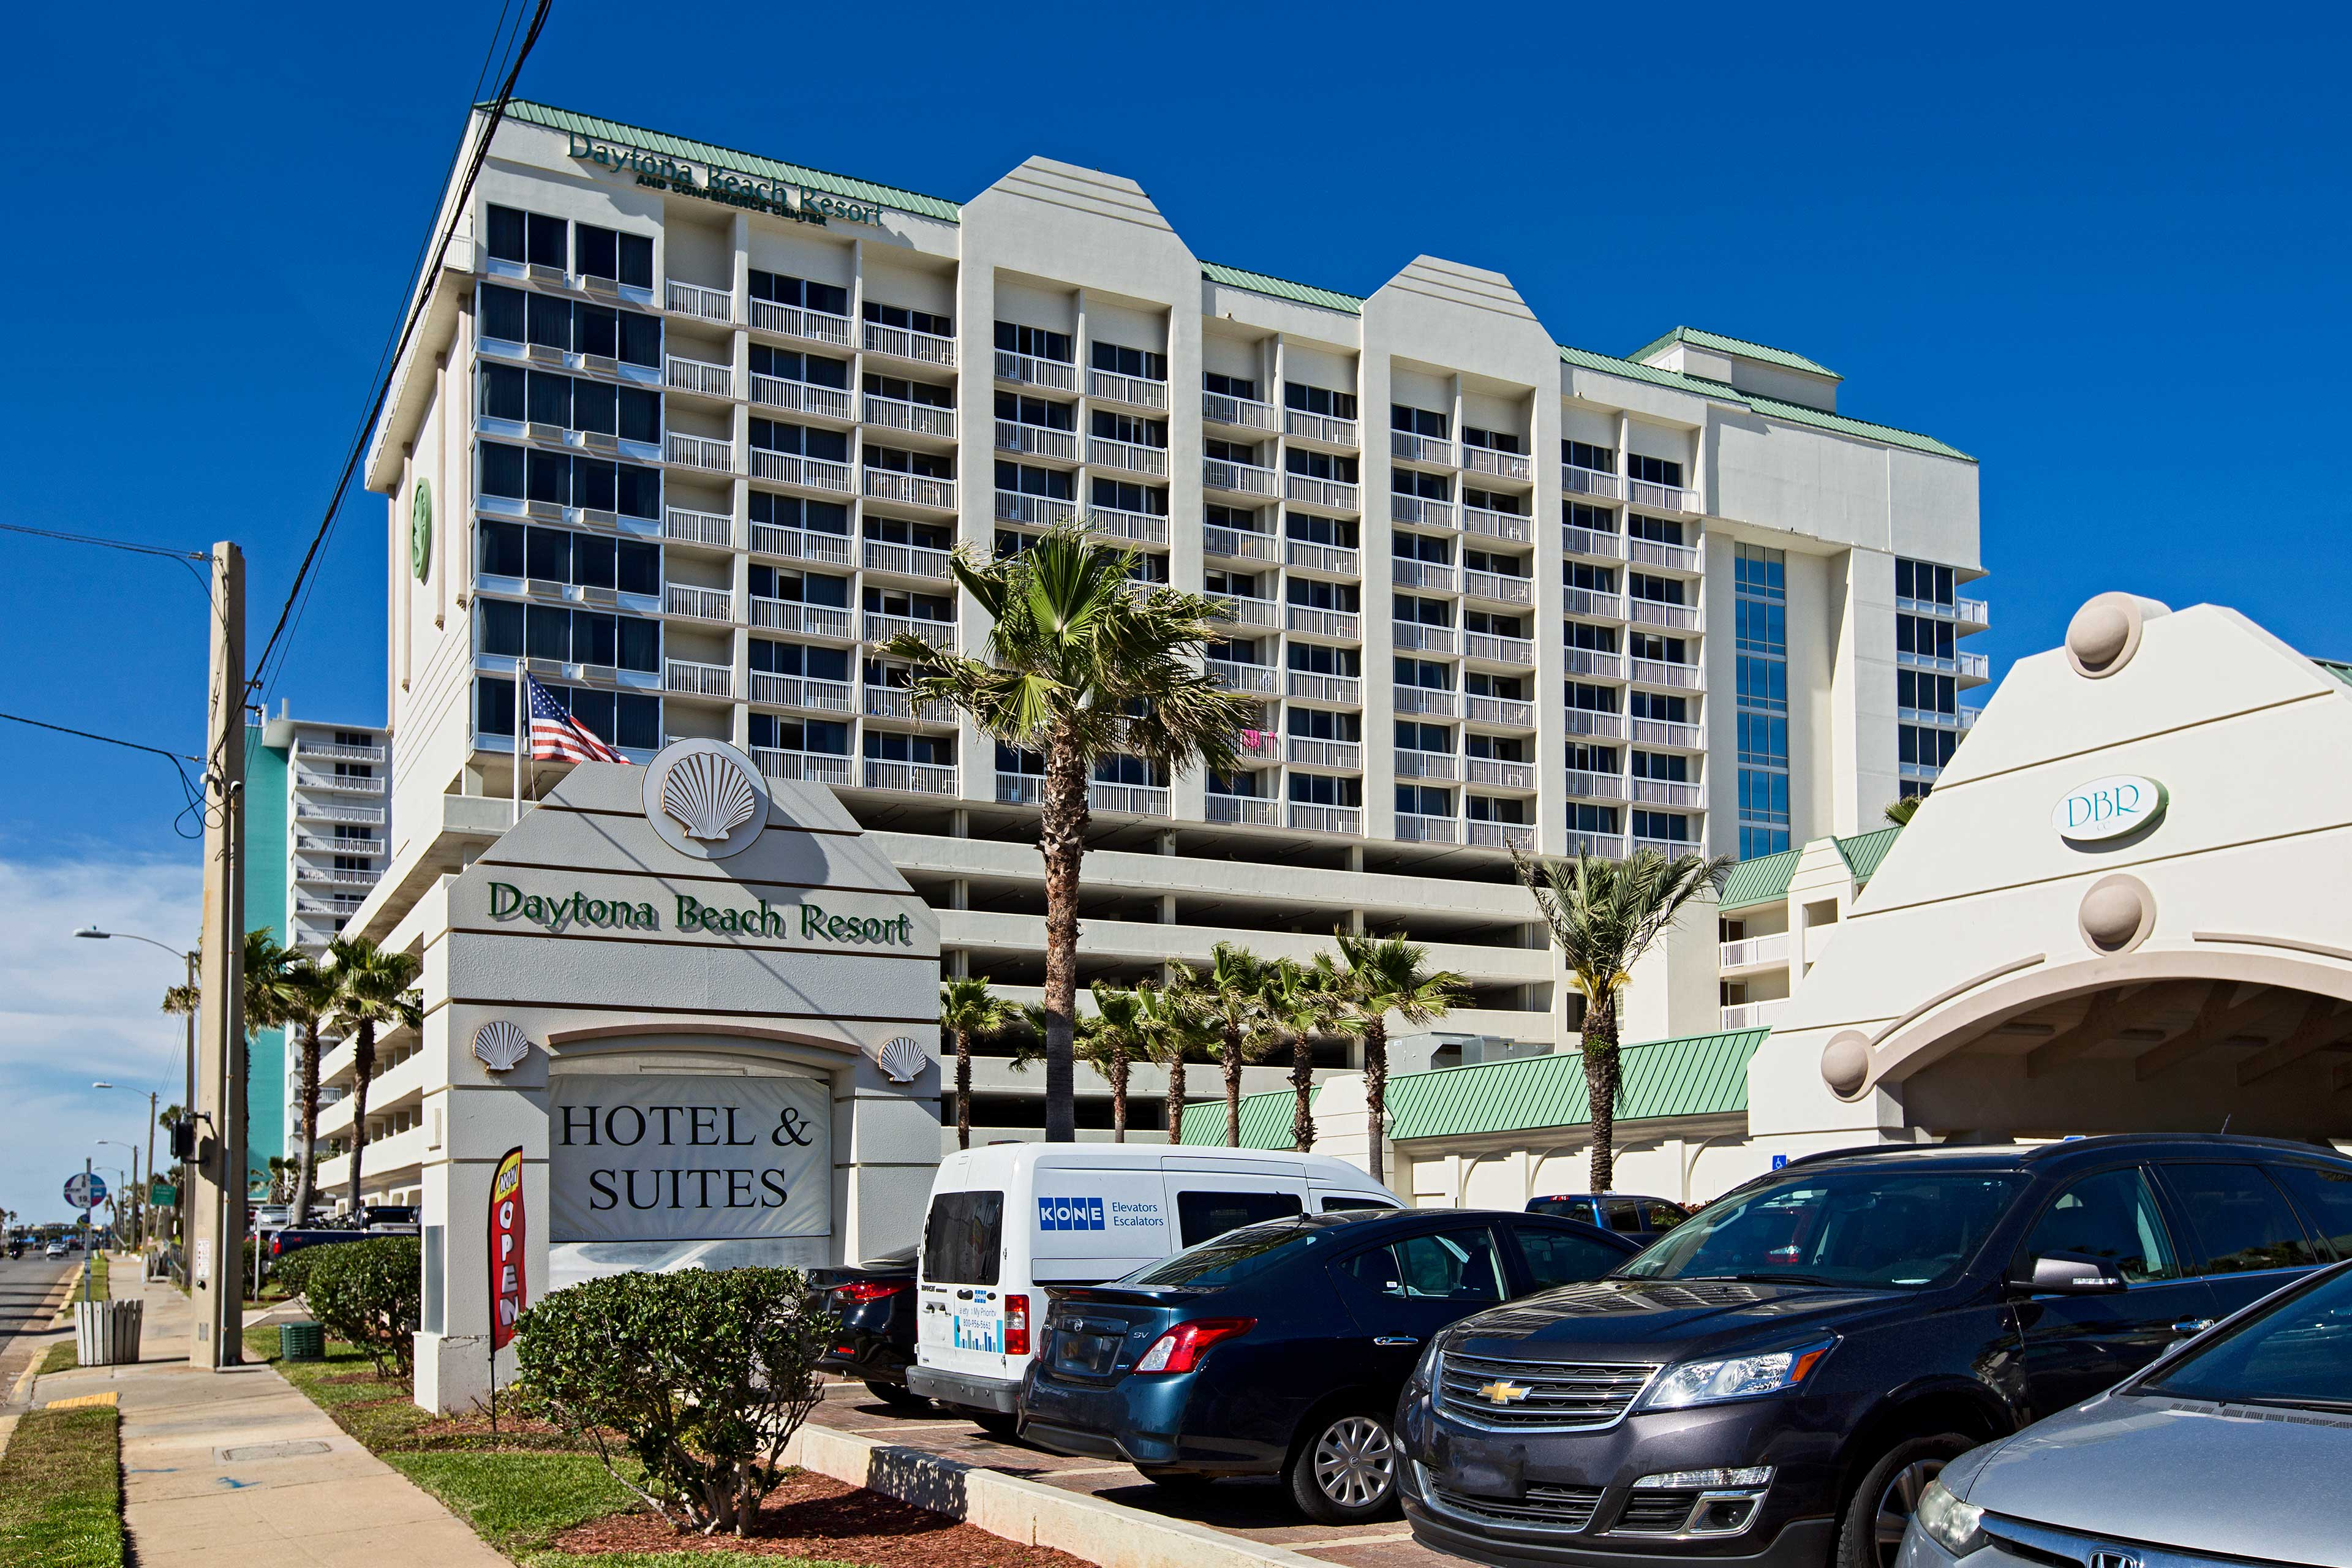 This complex is in the perfect location to explore Daytona Beach.